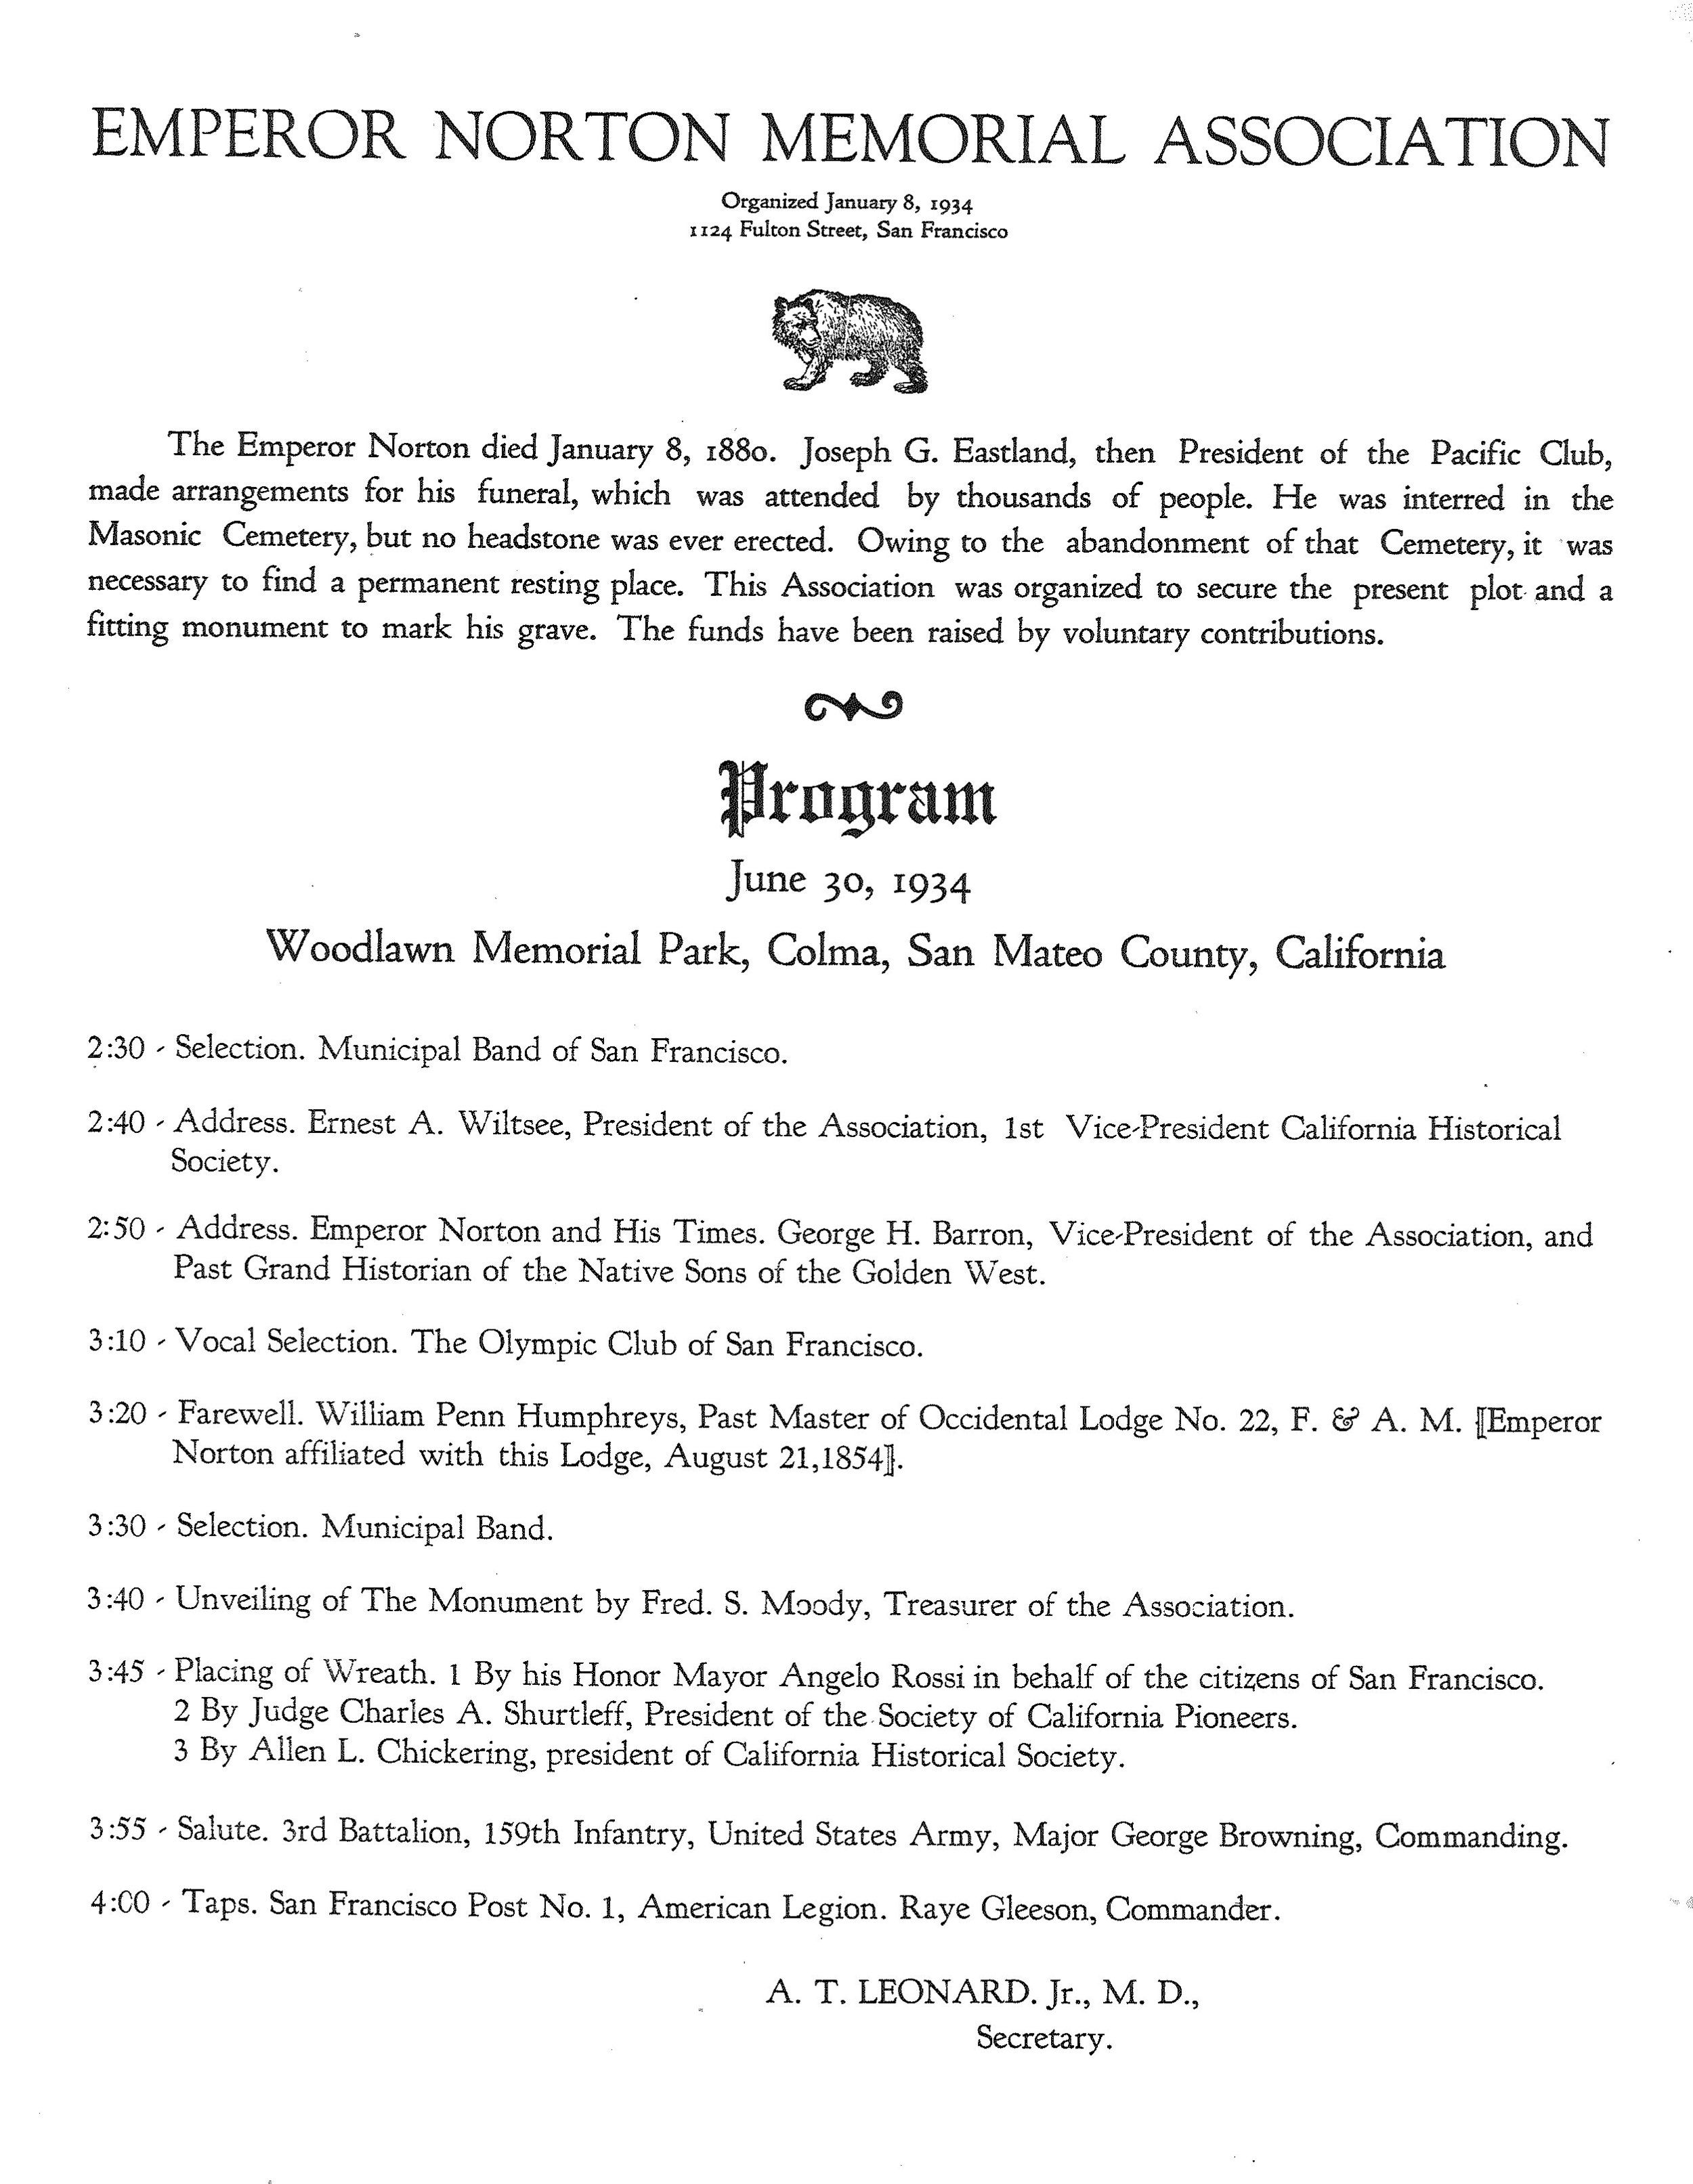 Program for 1934 service of Dedication for Emperor Norton's new resting place and gravestone at Woodlawn Memorial Park, Colma, Calif. VIA:  Jewish Museum of the American West .